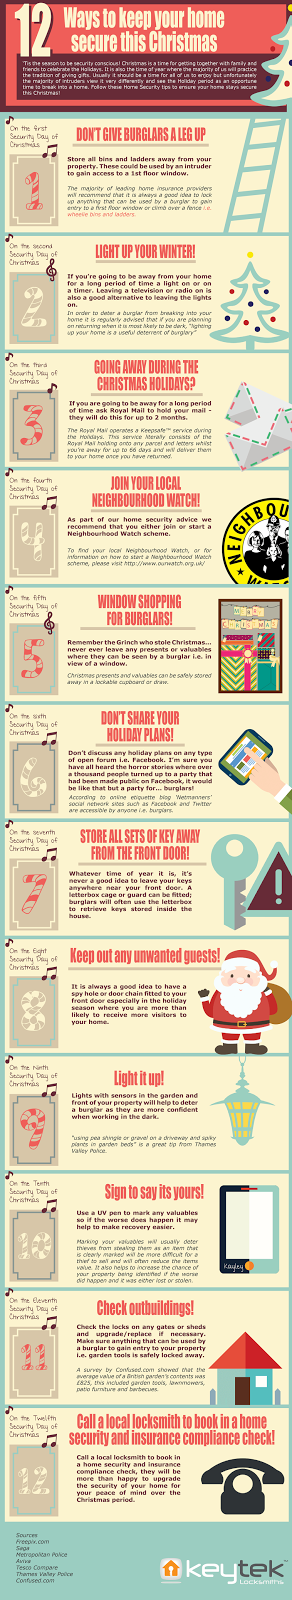 The 12 Home Security Tips of Christmas